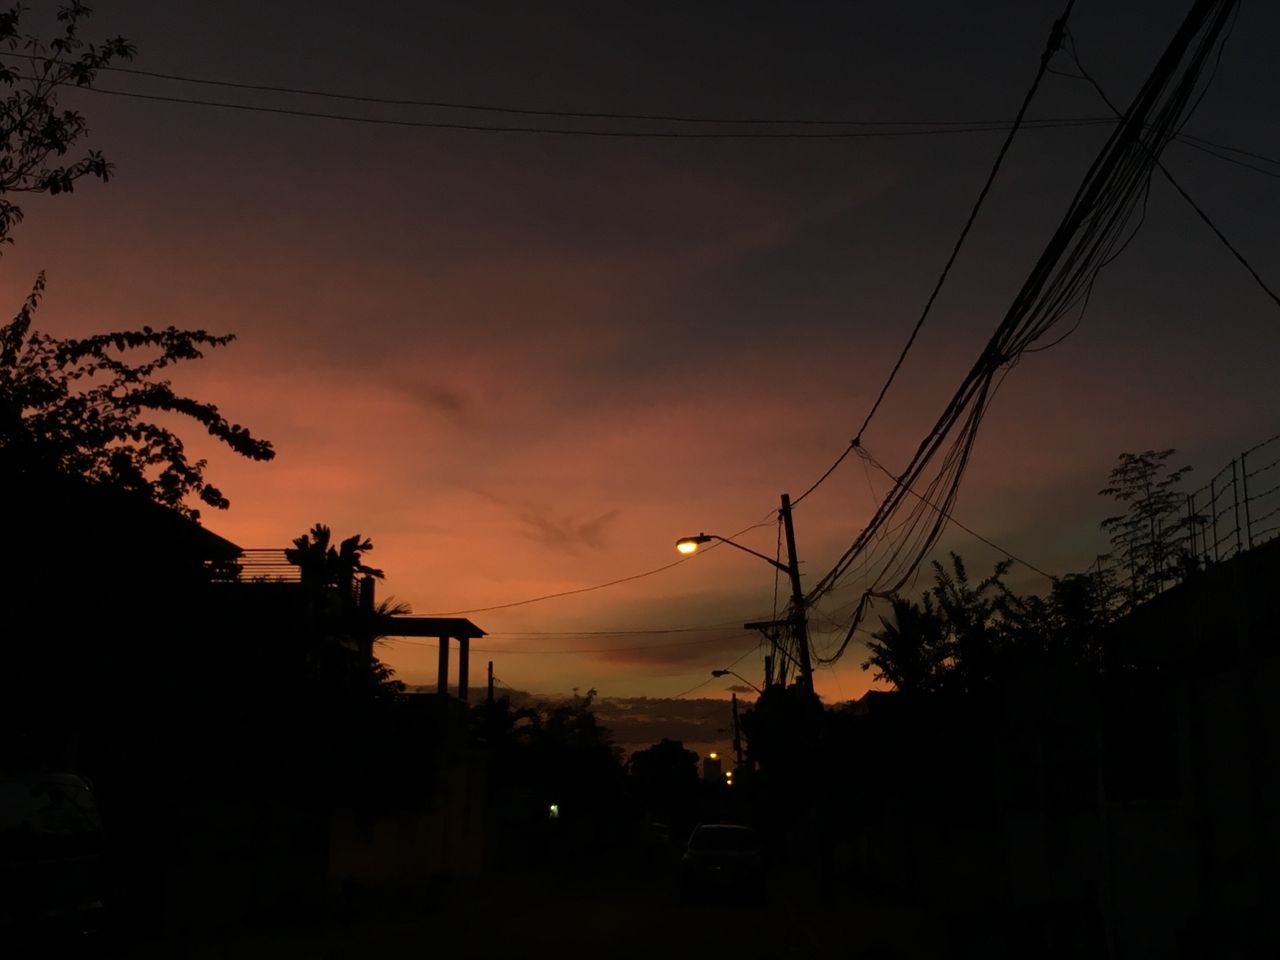 My Year My View Silhouette Sunset Sky Tree Power Line  Electricity  Dusk Cable Power Supply Built Structure No People Outdoors Building Exterior Dark Electricity Pylon Nature Architecture